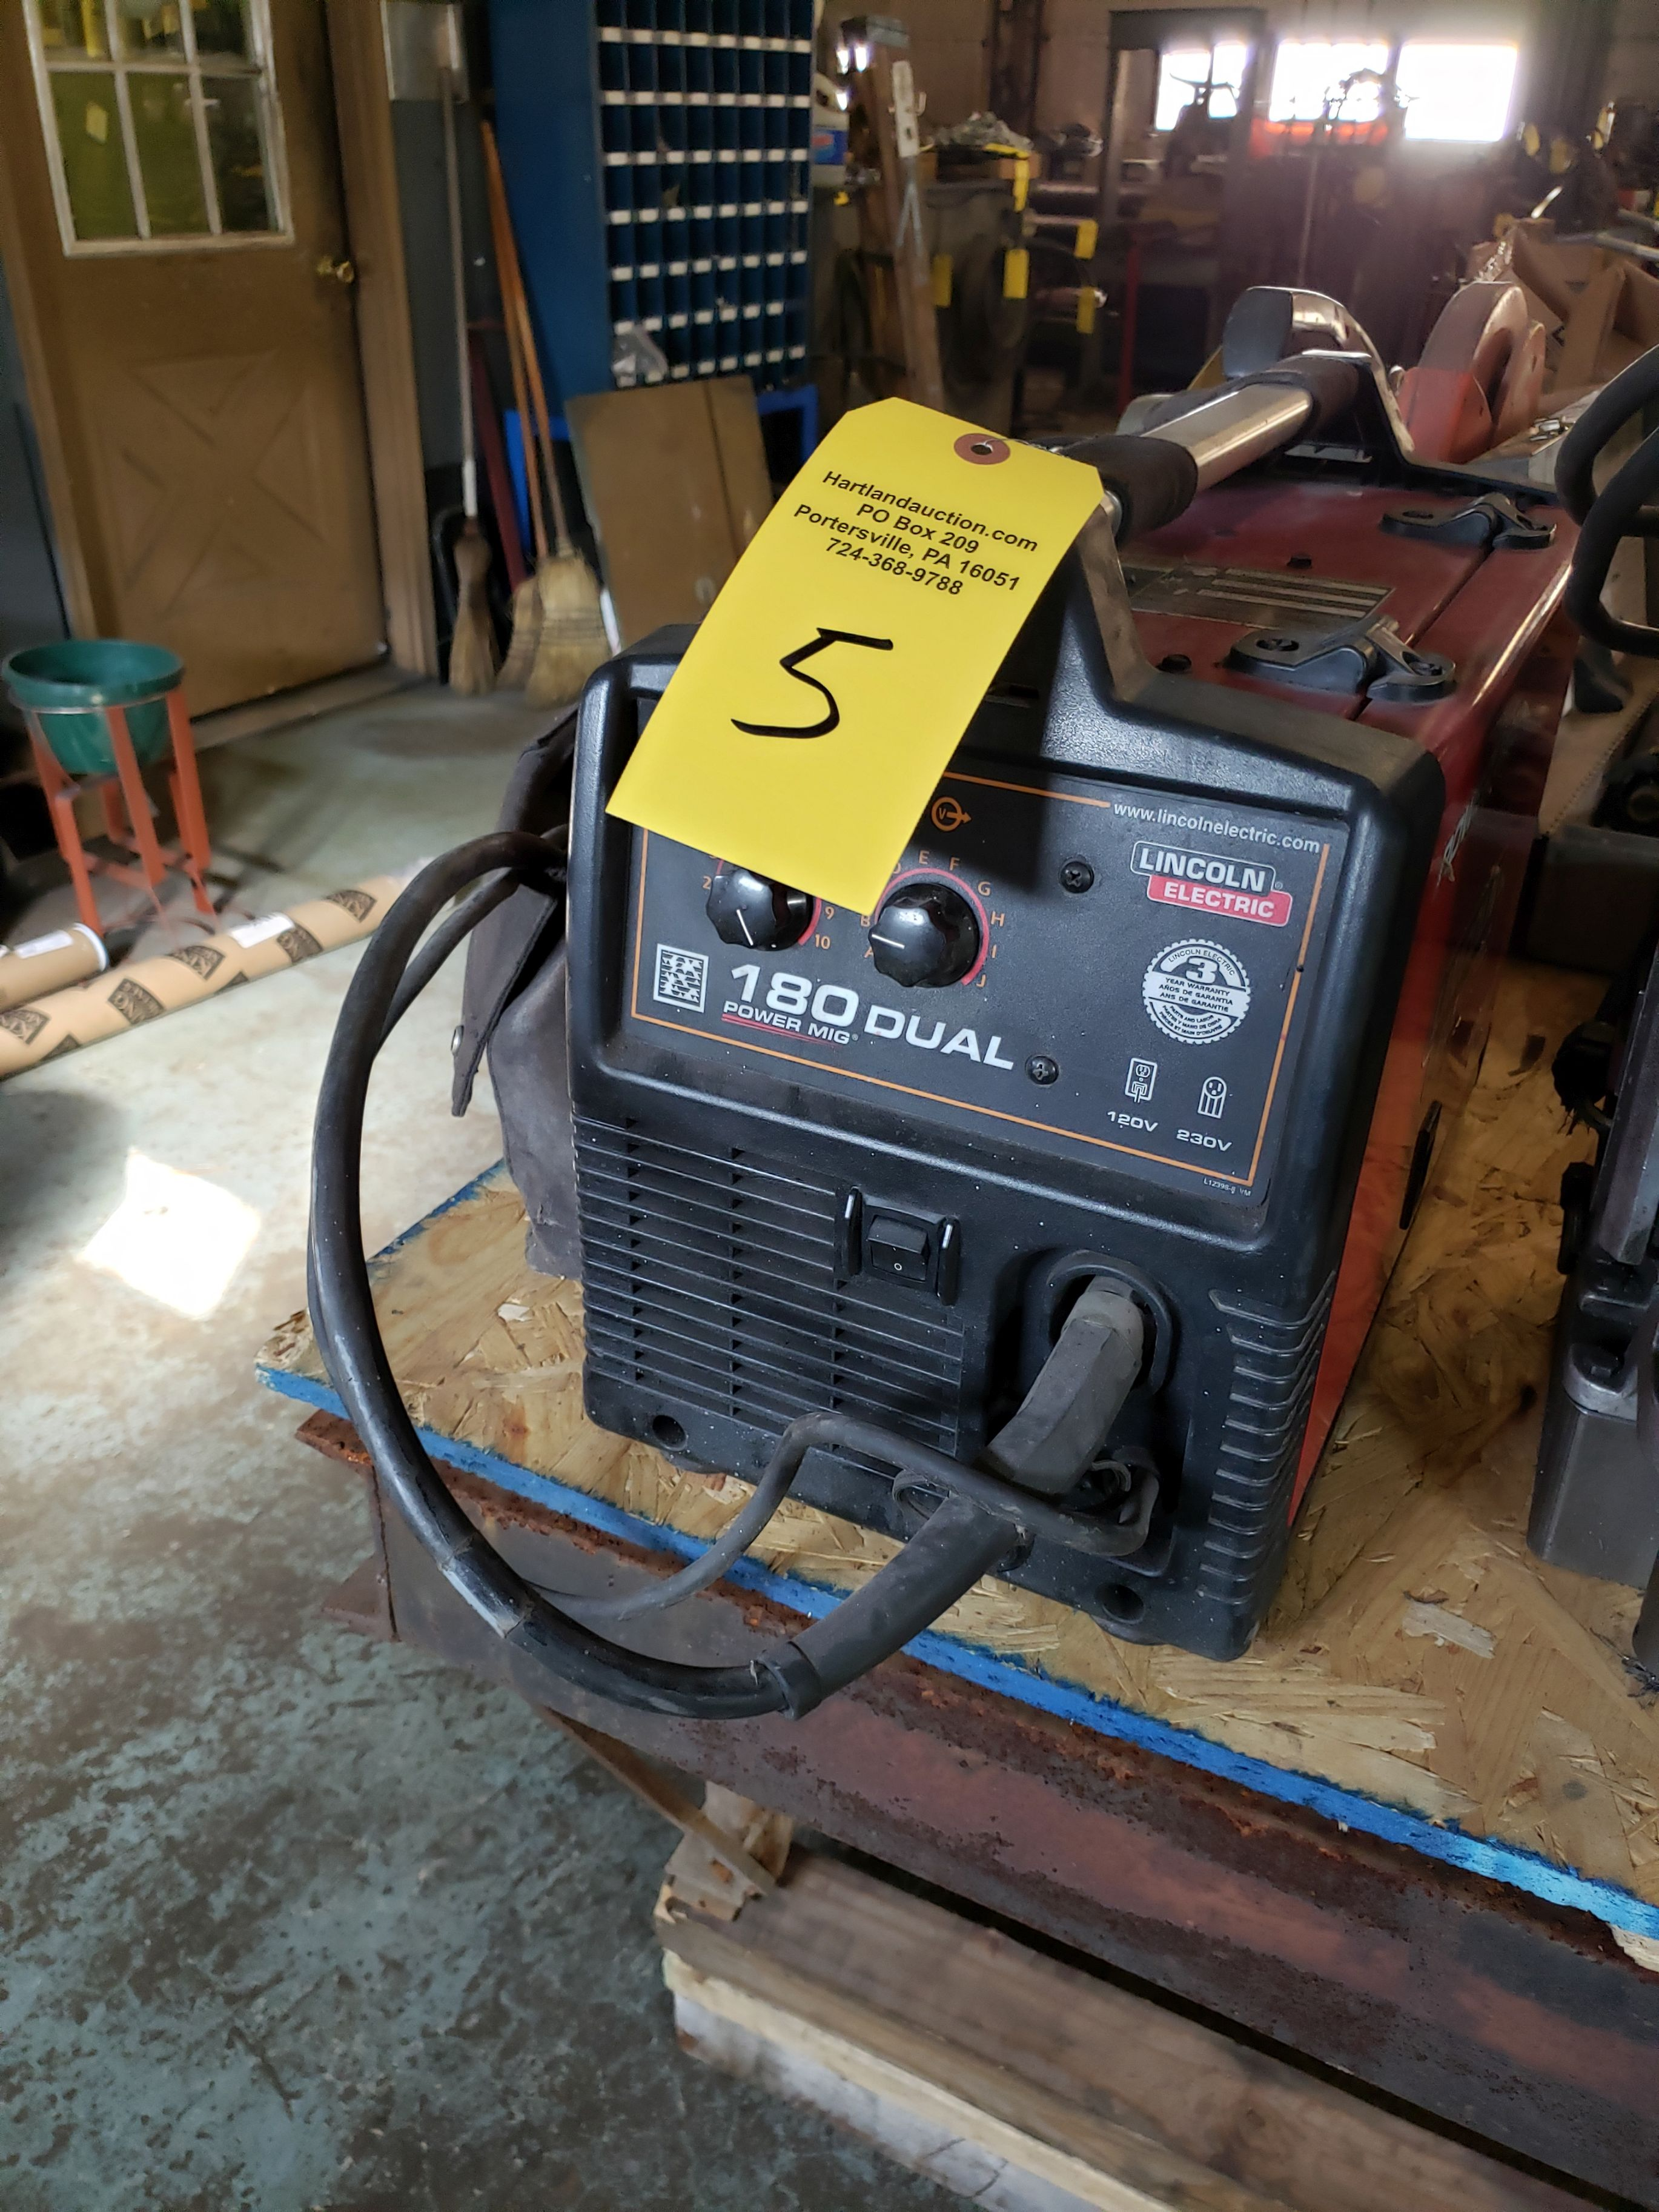 Lot 5 - LINCOLN 180 DUAL POWER MIG WELDER SINGLE PHASE 120/208/230V, SN M3140207795, CODE 11828